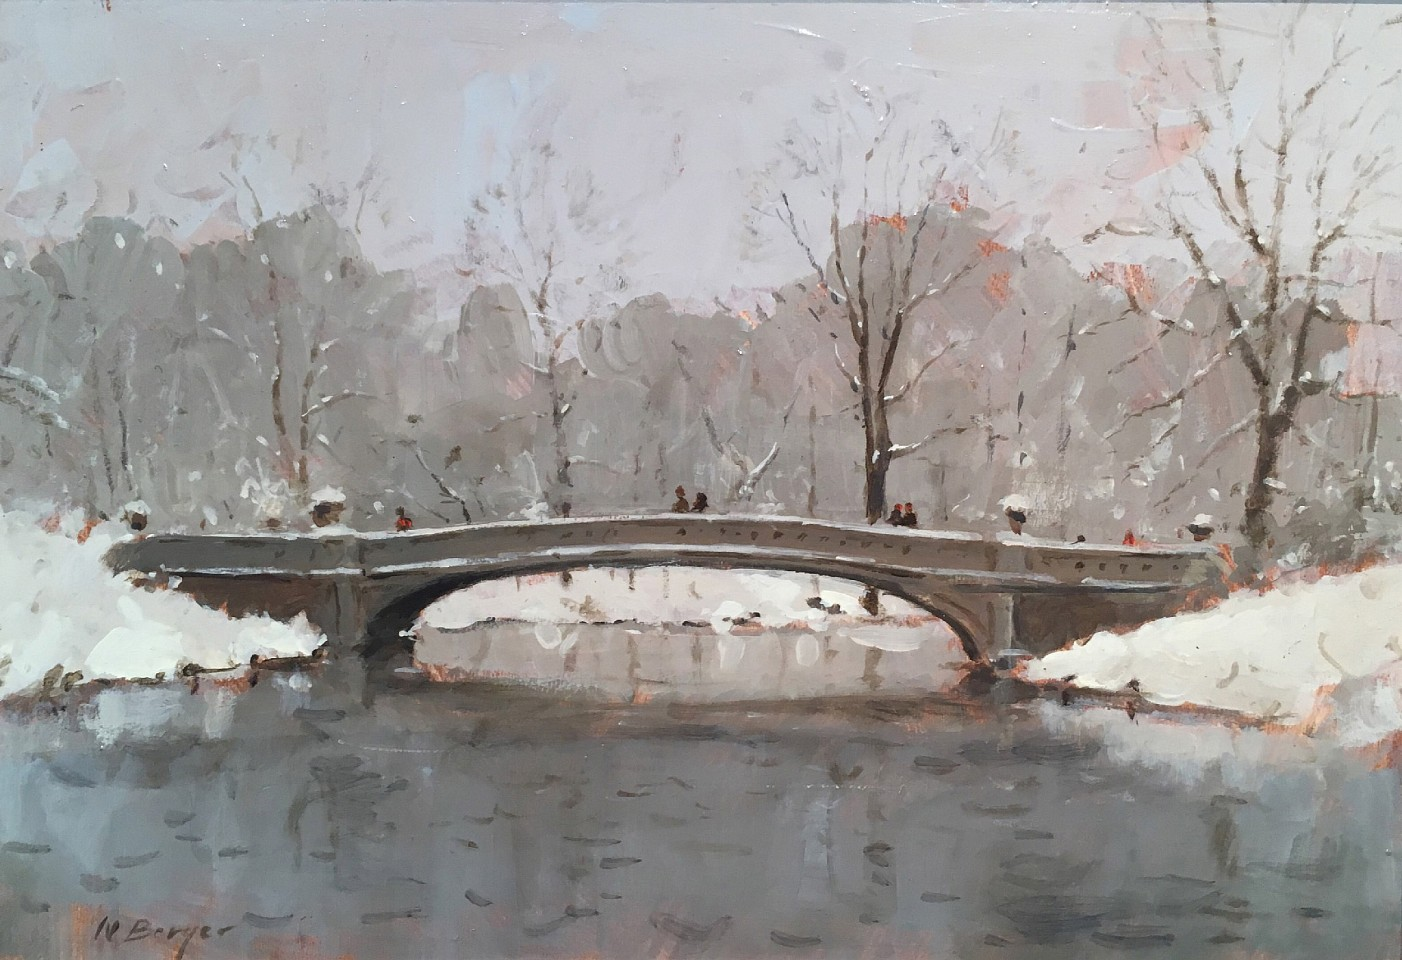 Nicholas Berger ,   Bow Bridge Winter Study  ,  2018     oil on panel ,  7 7/8 x 11 1/4 in. (20 x 28.6 cm)     NB181108